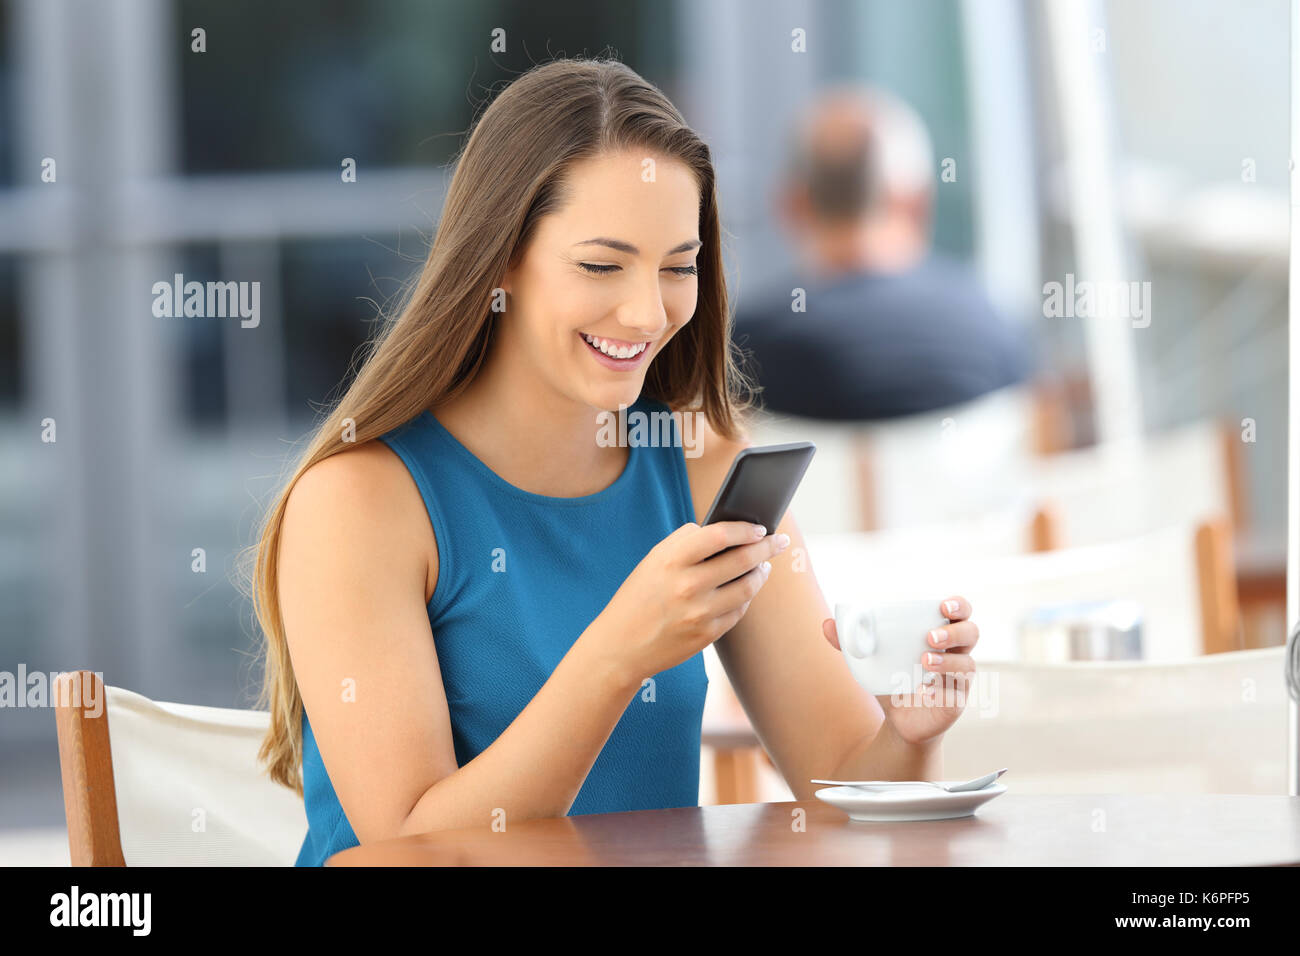 Single happy woman reading a phone message sitting in a bar - Stock Image